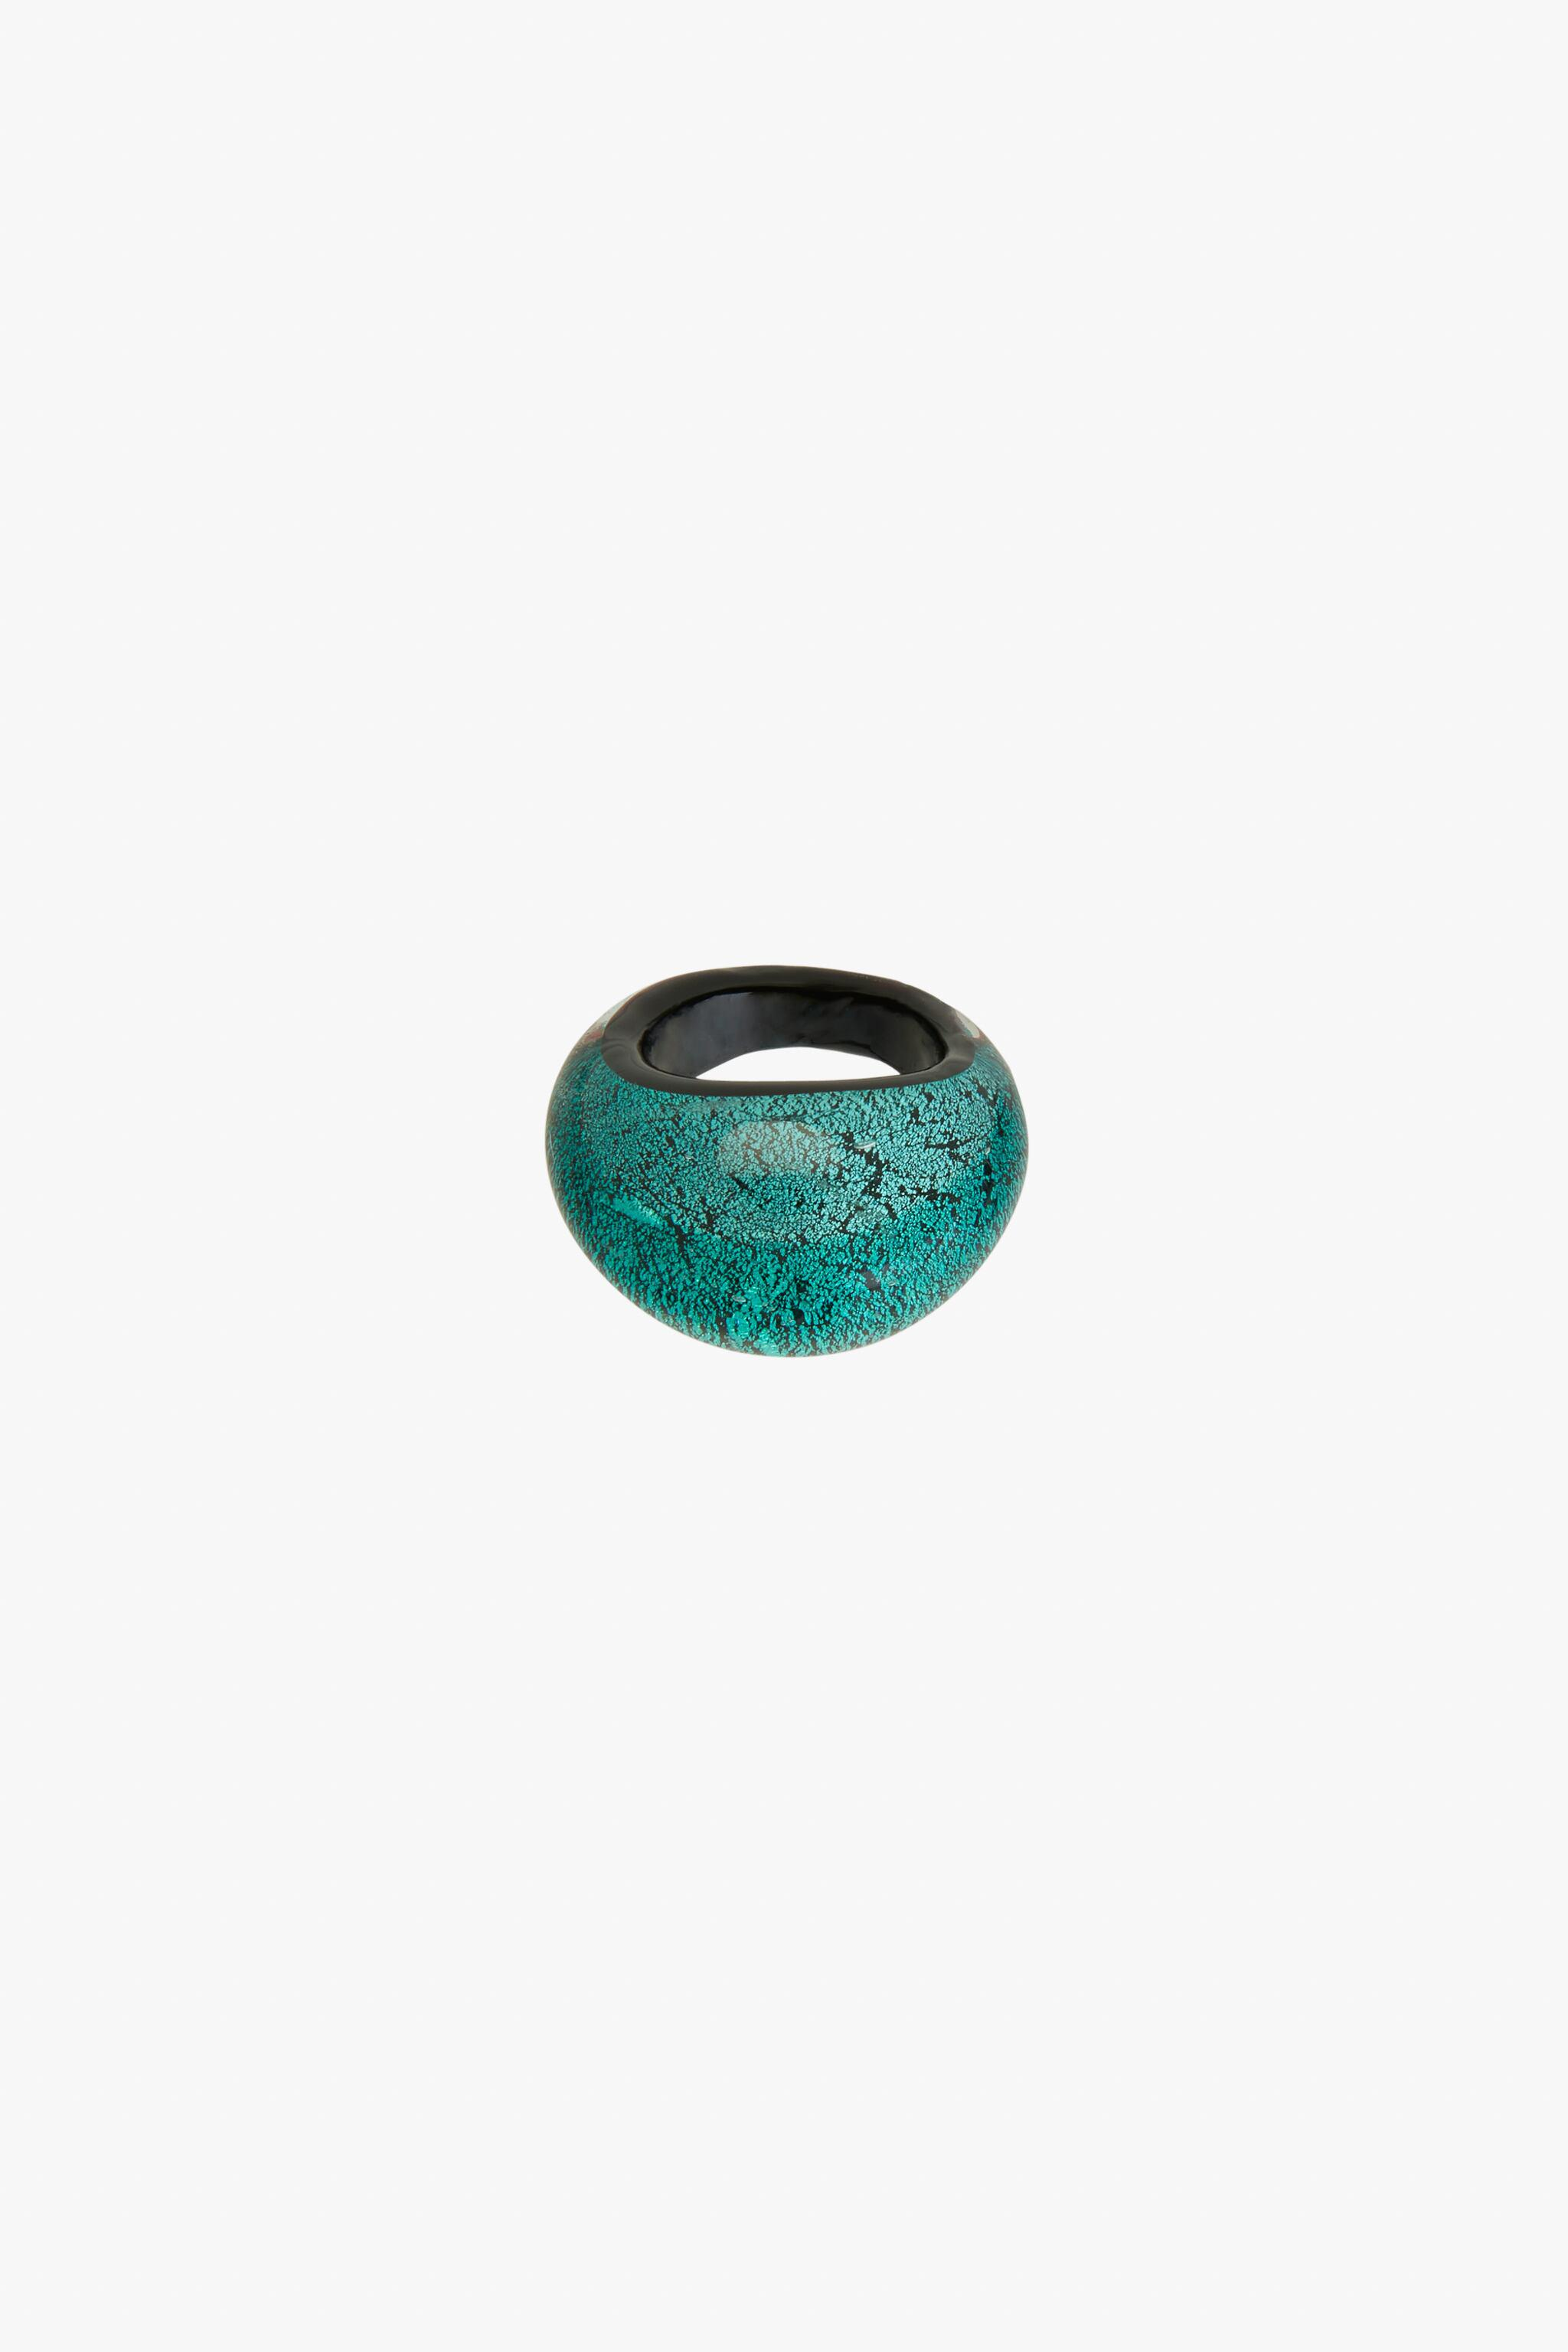 GLASS RING LIMITED EDITION 2